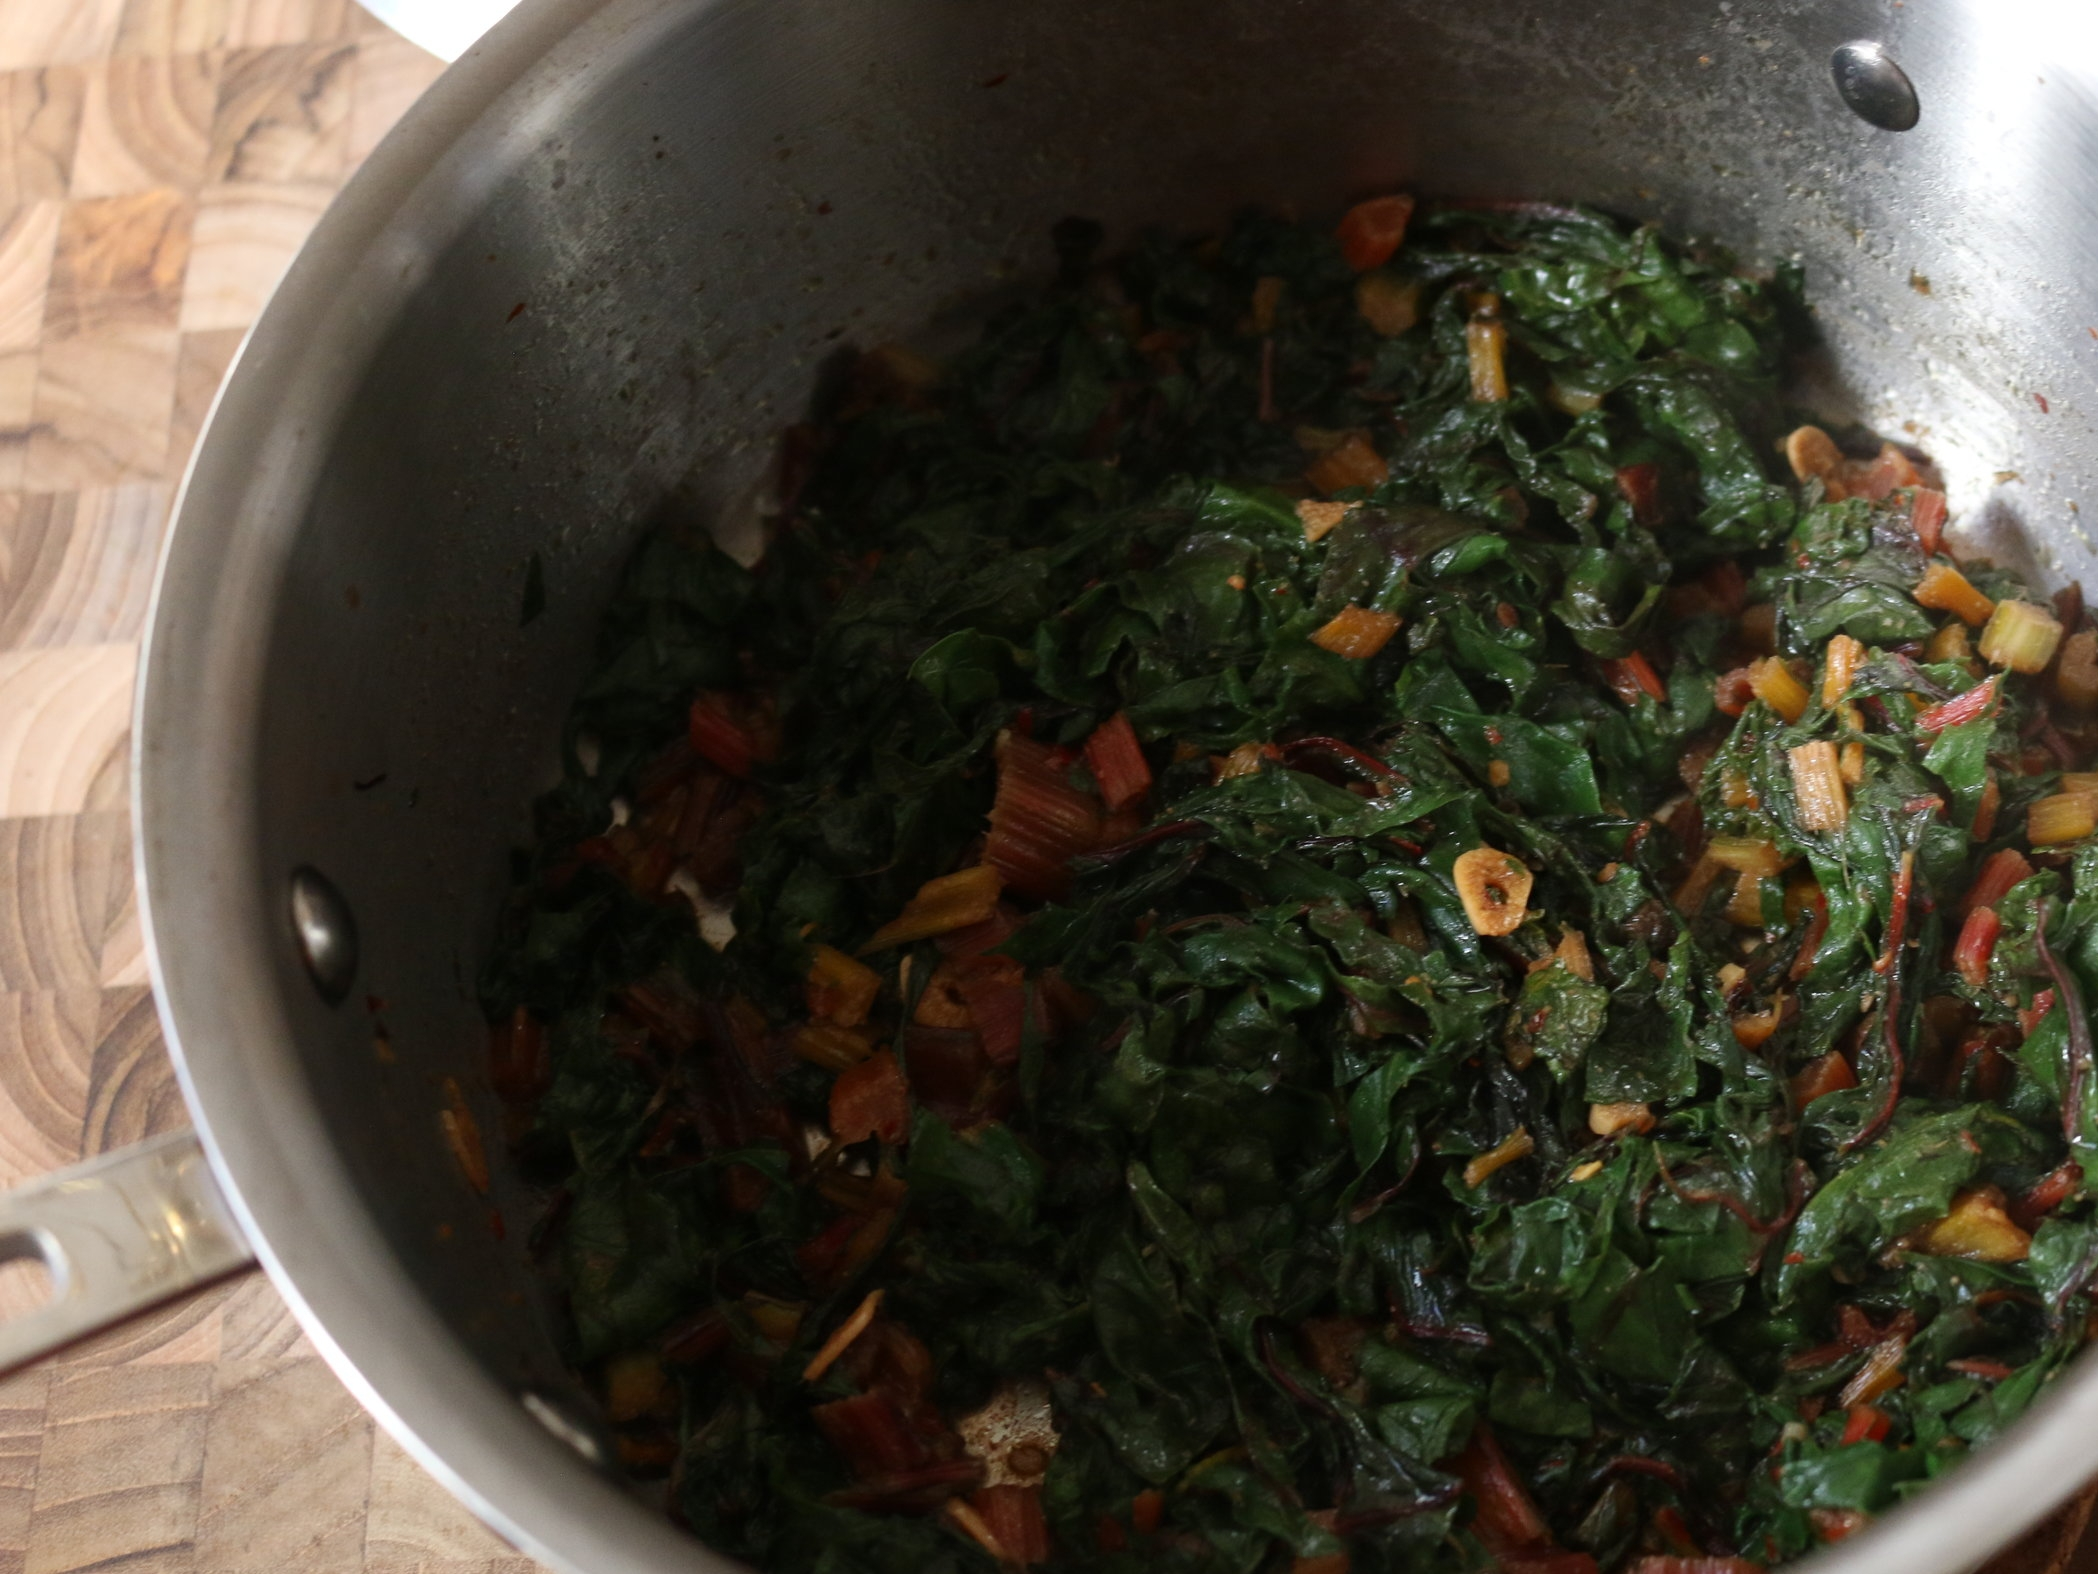 mix - in leaves and continue cooking until cooked through